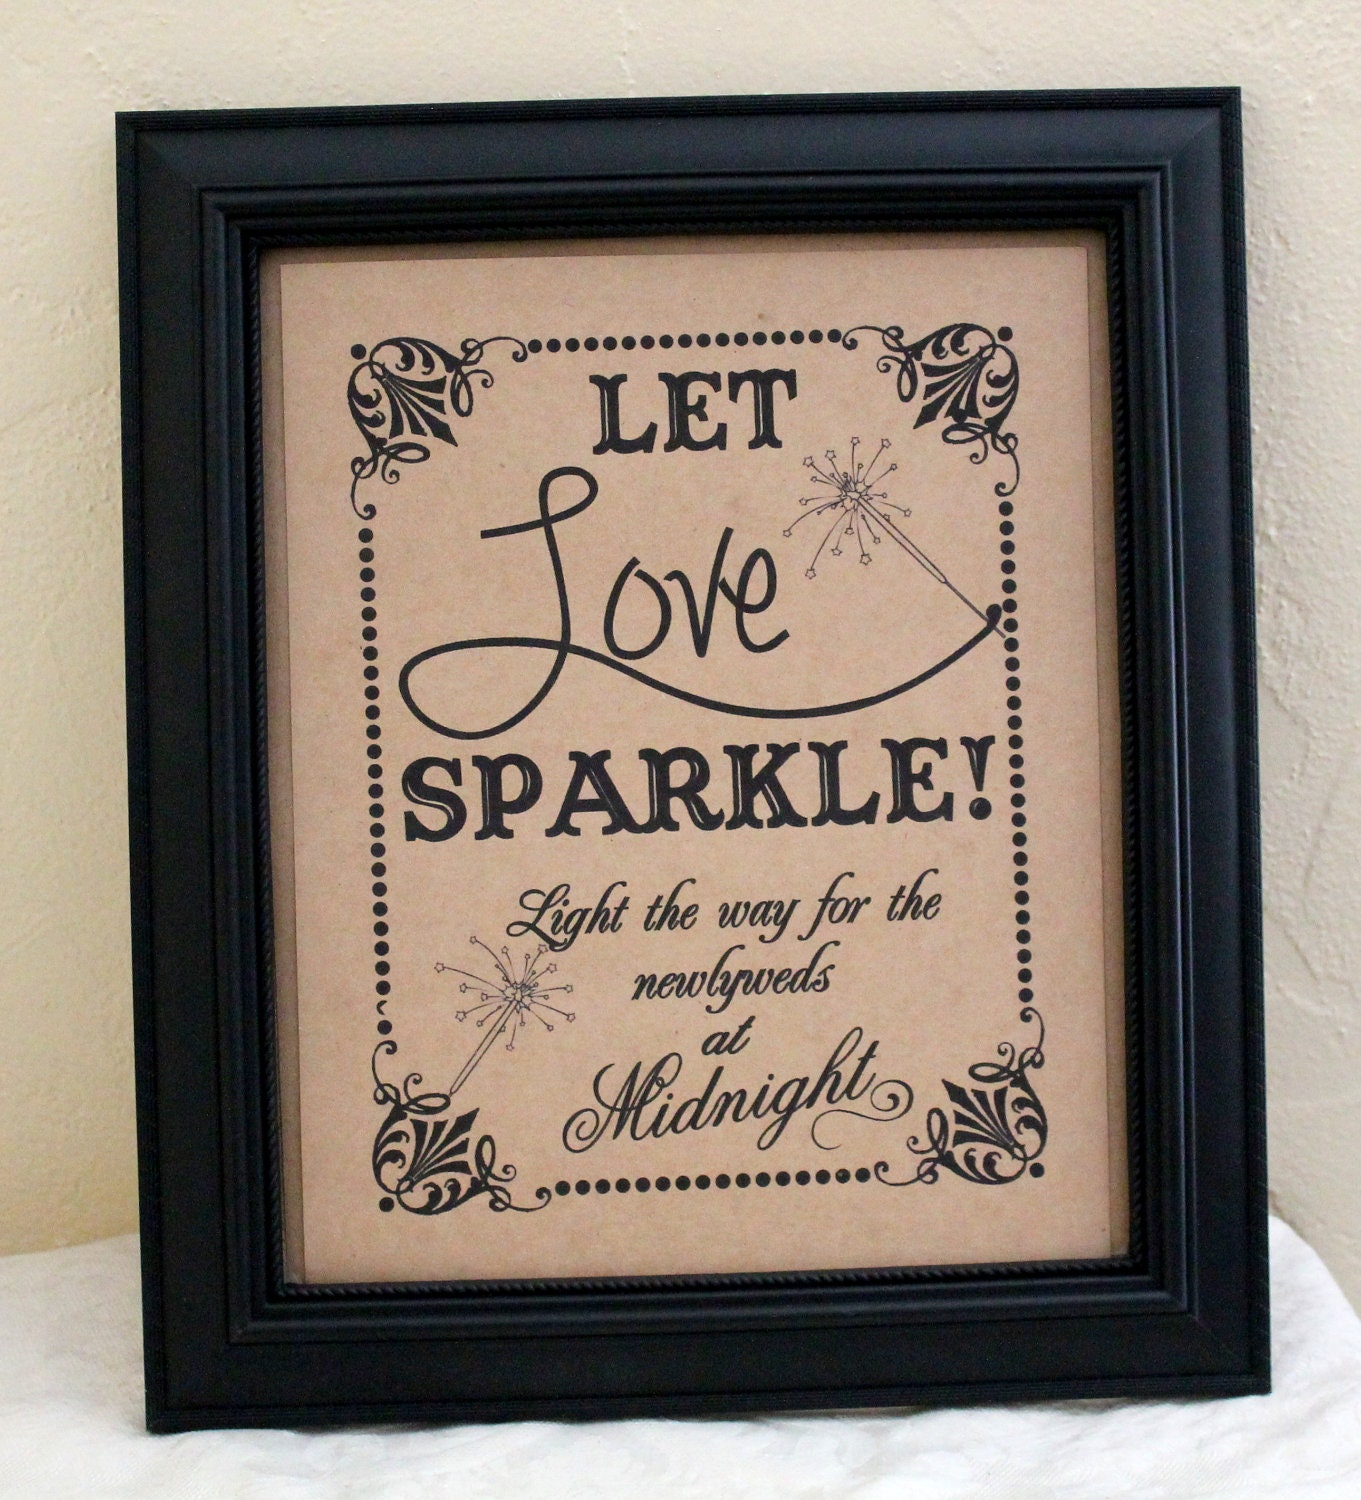 8 X 10 Let Love Sparkle Wedding Sign Send Off Single Sheet. Safety Sign Signs. Gottron Signs. Dander Signs Of Stroke. Case Signs Of Stroke. Hormone Signs. Veterans Day Signs Of Stroke. Ankles Signs. November 5th Signs Of Stroke